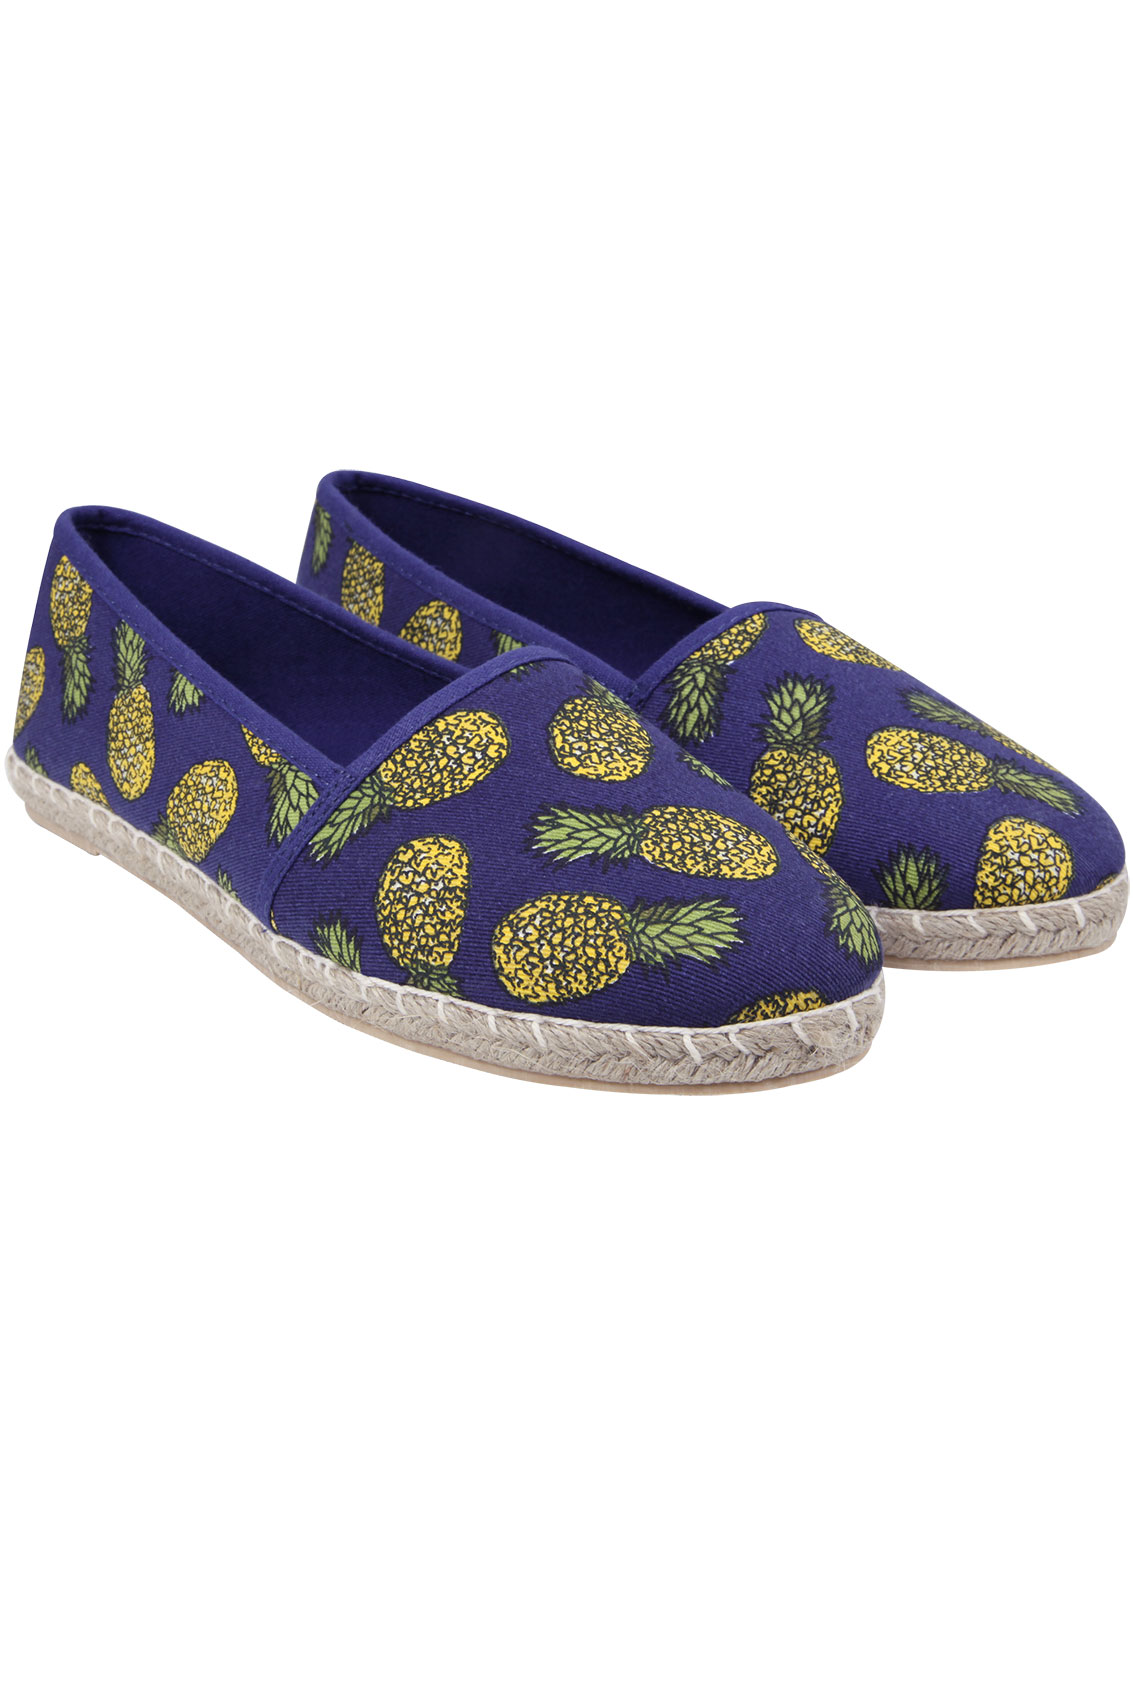 Blue pineapple print canvas espadrille pump in eee fit for Buy here pay later